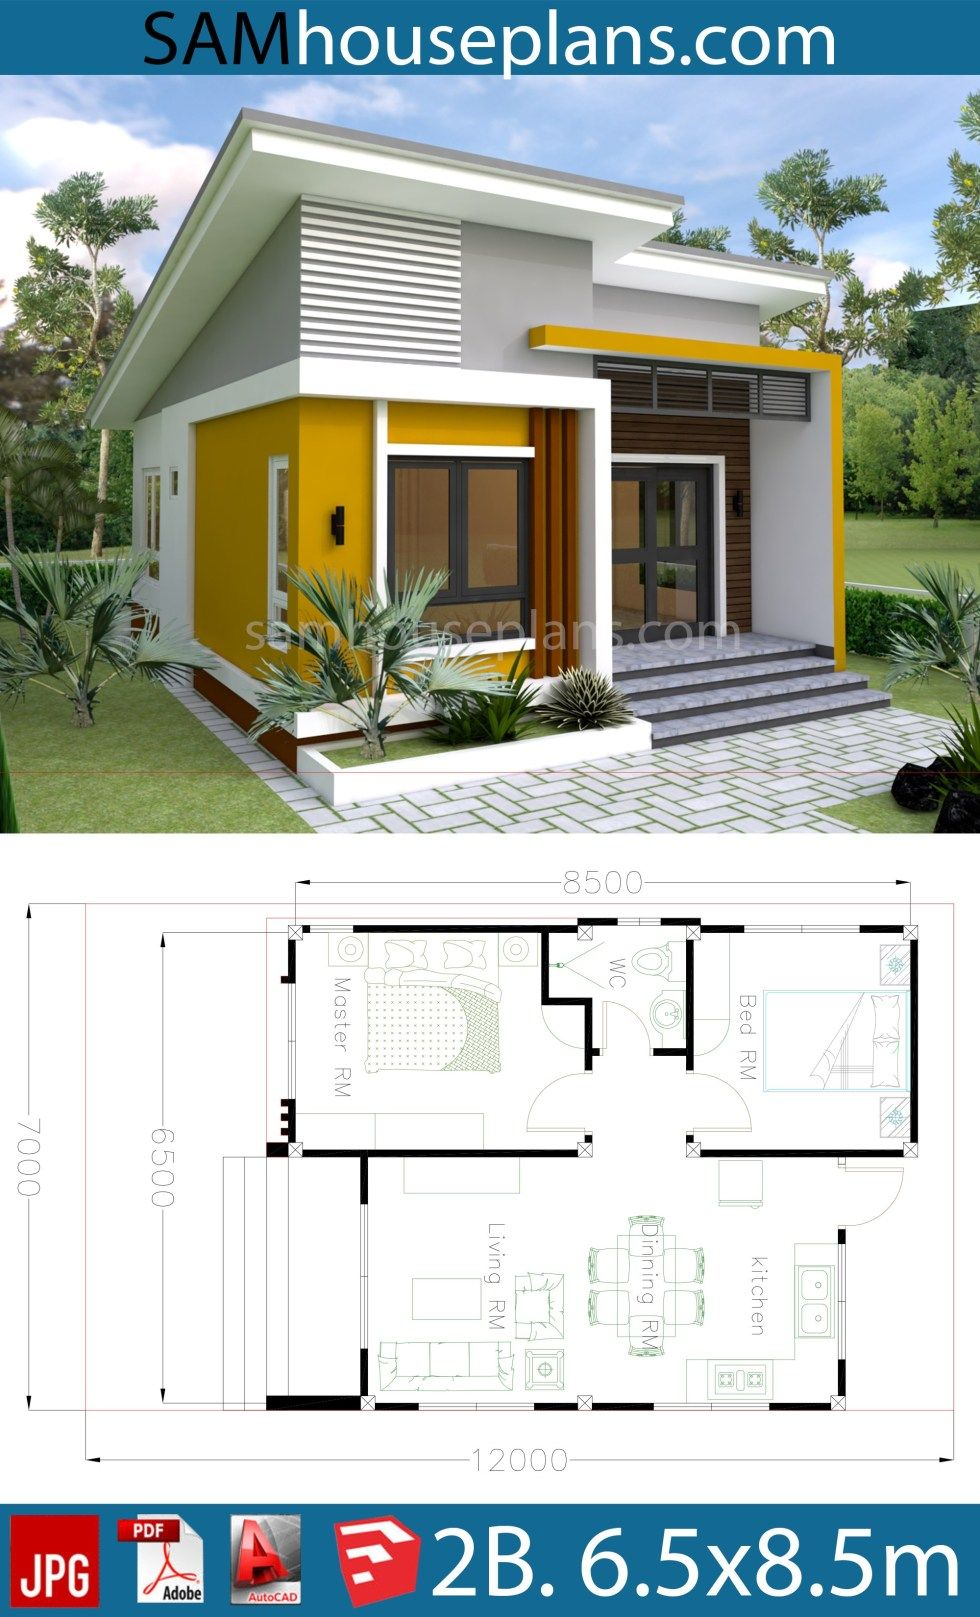 House Plans 6 5x8 5m With 2 Bedrooms Simple House Design Small House Design Modern House Design